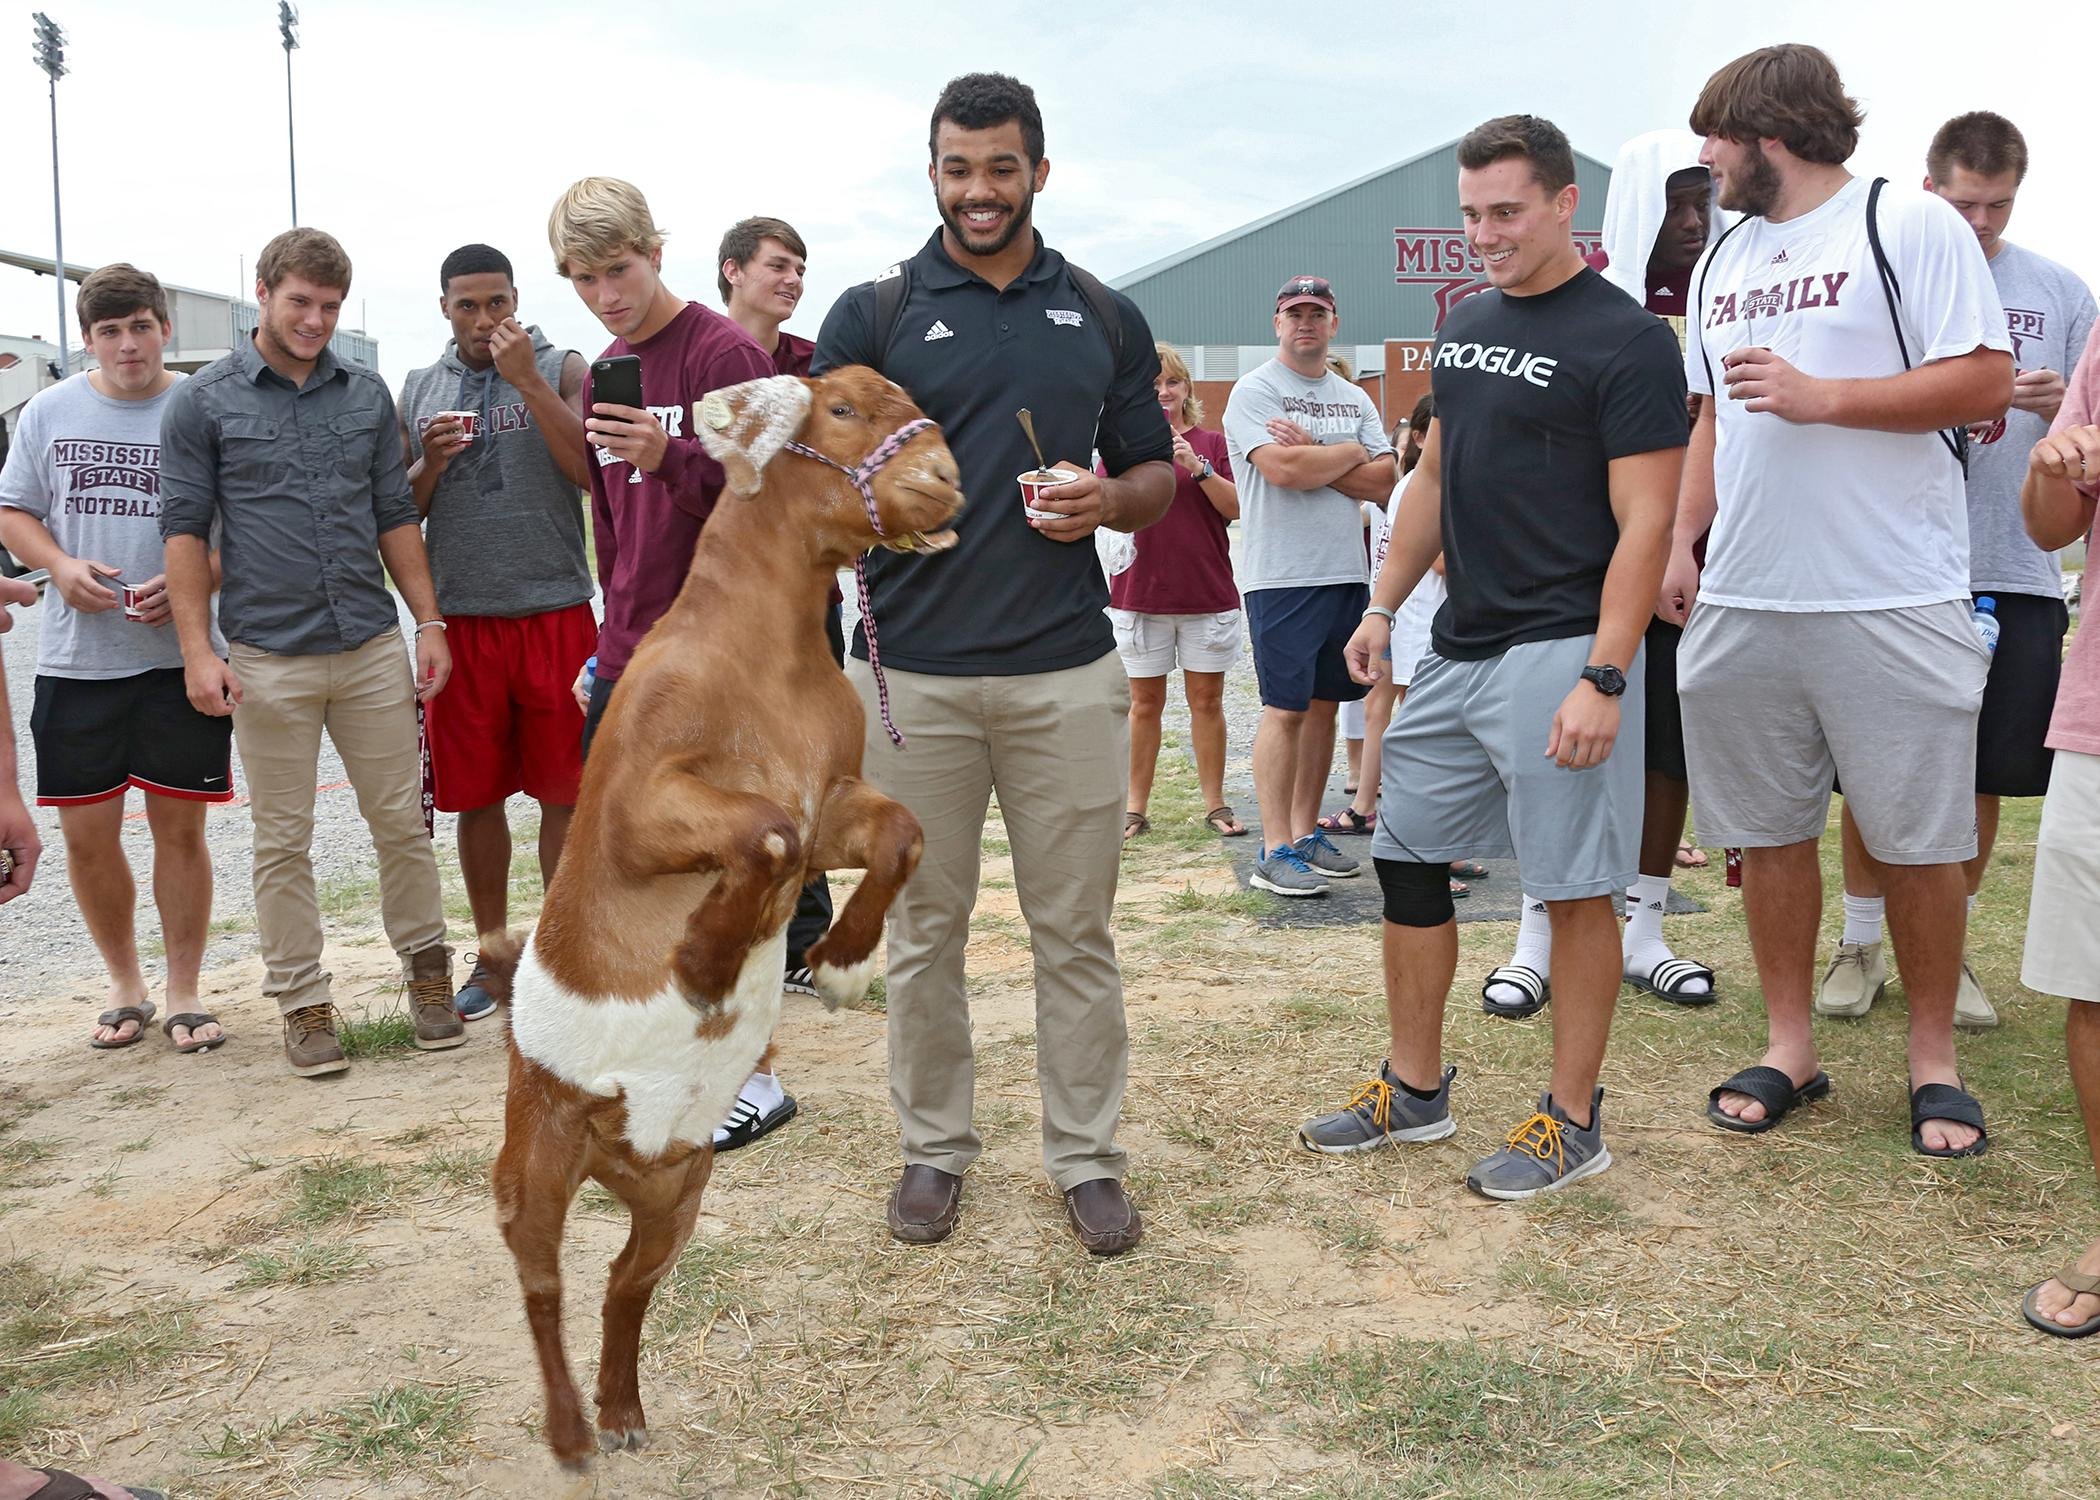 Freshman Alec Murphy of Nixa, Missouri, and other members of the Mississippi State University football team play with a goat during the fifth annual Beefing Up the Bulldogs event at MSU on Aug. 16, 2015. Event sponsors included the Mississippi Cattlemen's Association, the Mississippi Beef Council, First South Farm Credit and the MSU Department of Animal and Dairy Sciences. (Photo by MSU Ag Communications/Kat Lawrence)